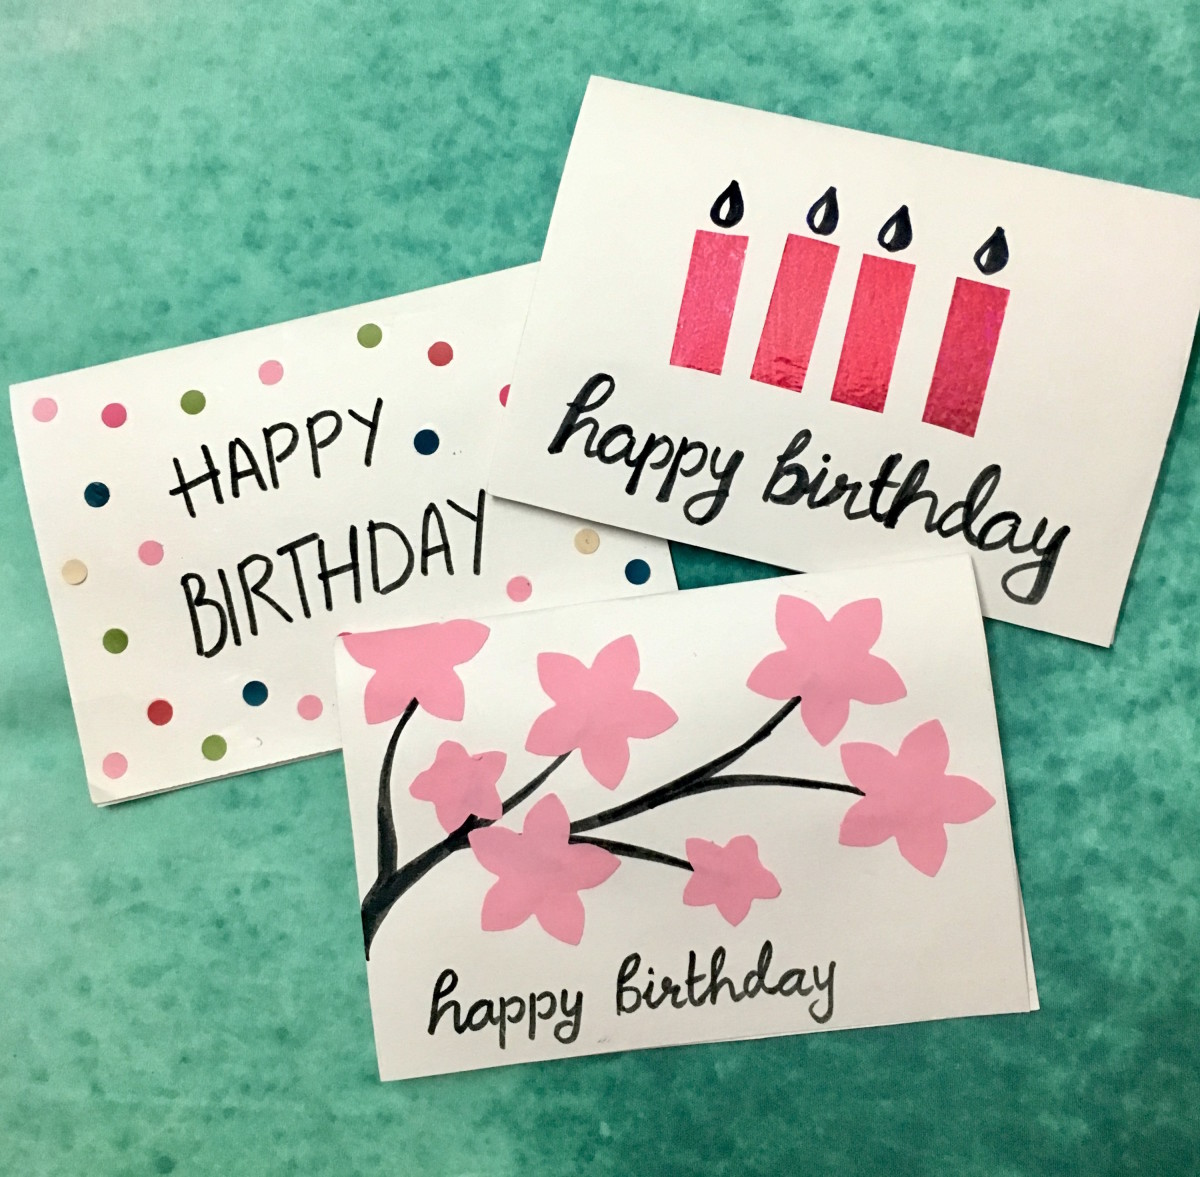 3 easy 5 minute diy birthday greeting cards holidappy